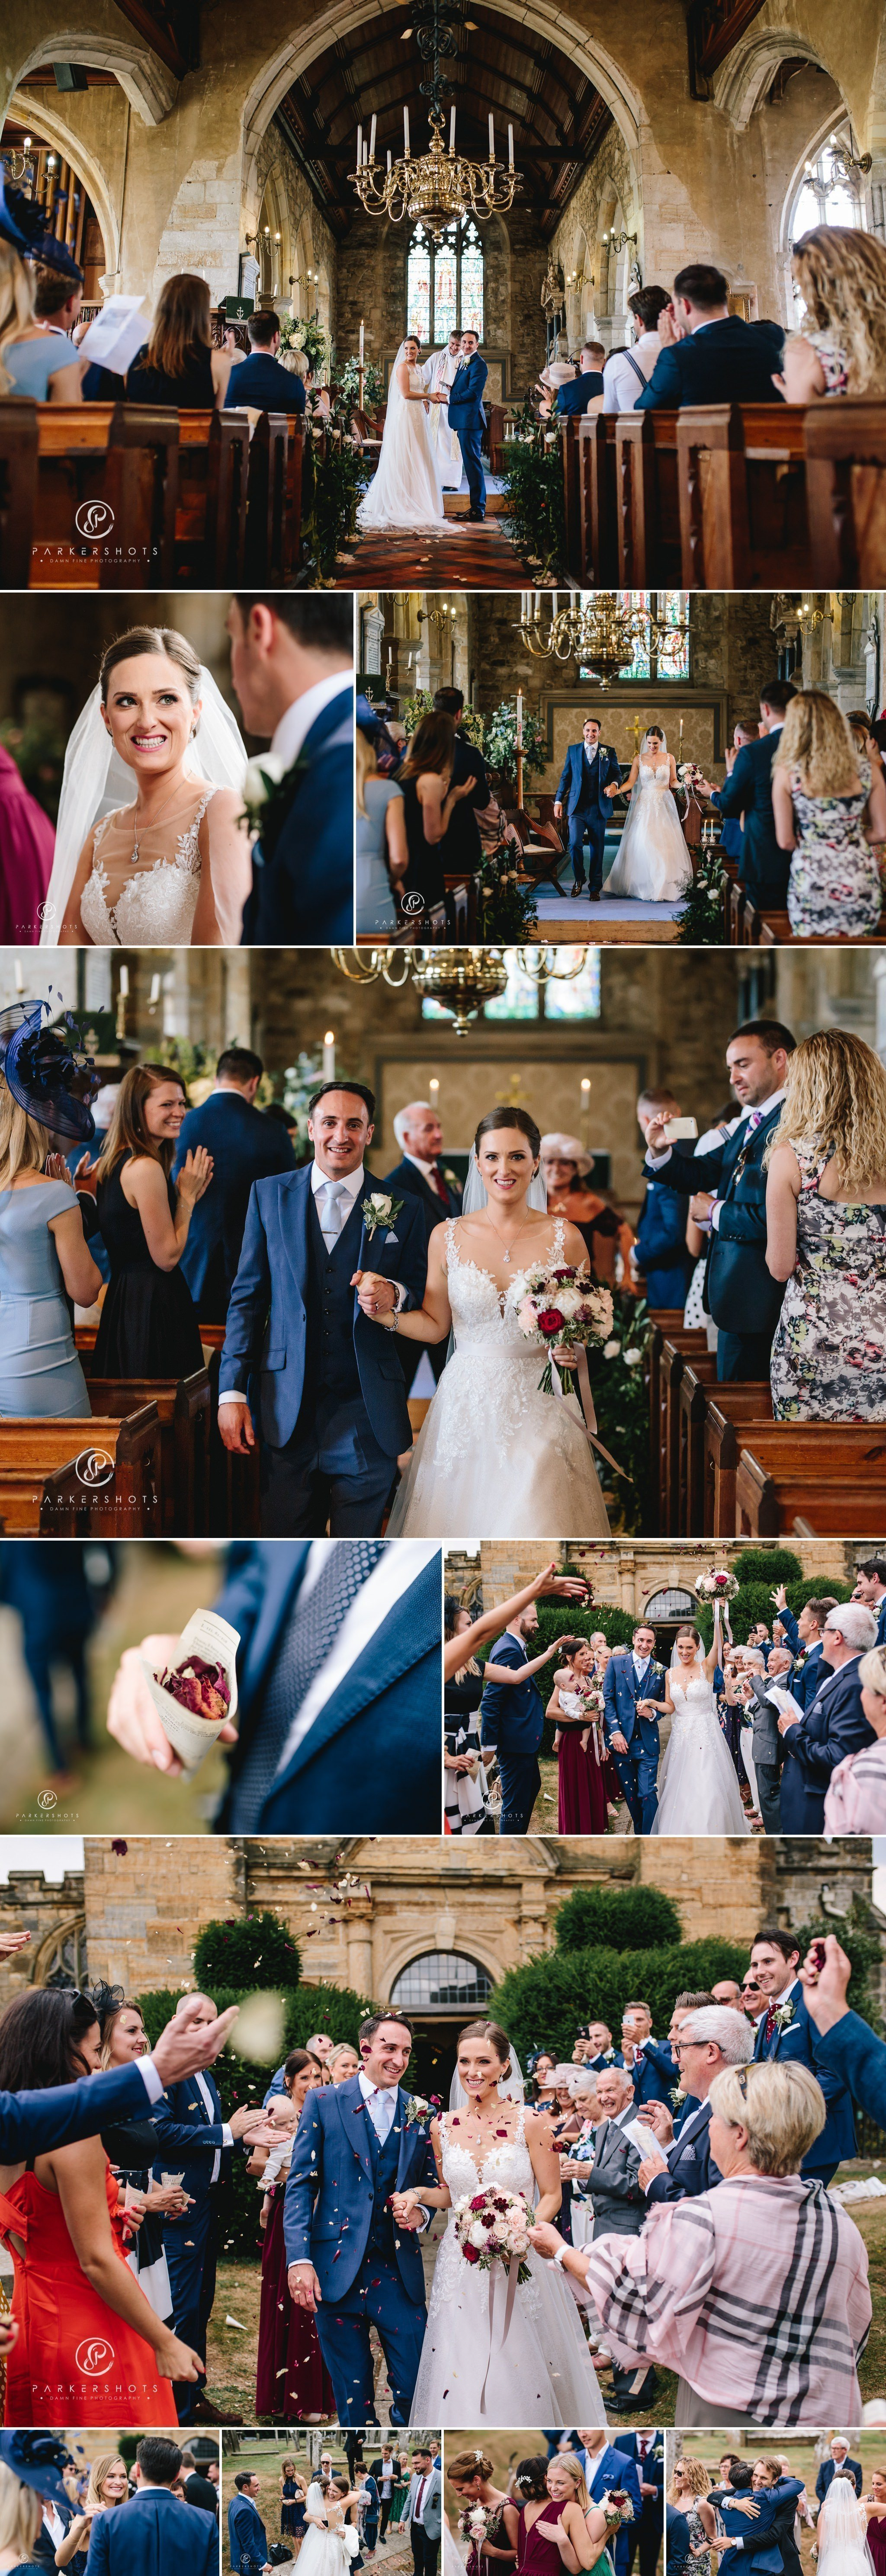 Wadhurst Castle Wedding Photographer - Wedding Ceremony